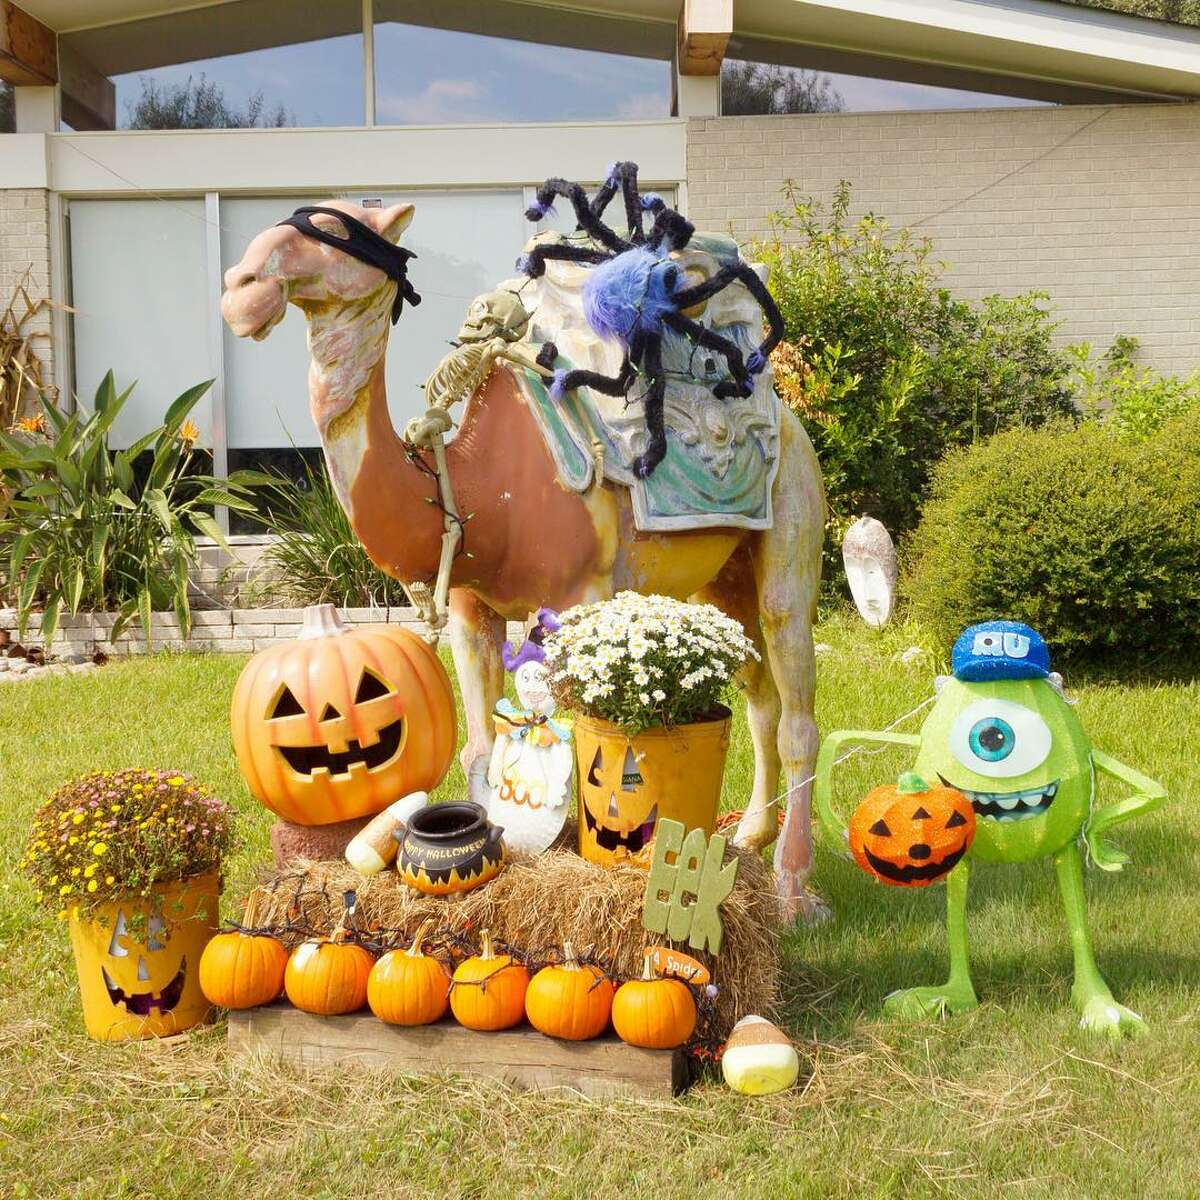 Lesson No. 3: Don't try to disguise your Christmas decorations for Halloween. Happy Camel-ween is not a thing. Sorry, you're not fooling us. We would know that camel from your nativity lawn ornament set anywhere.